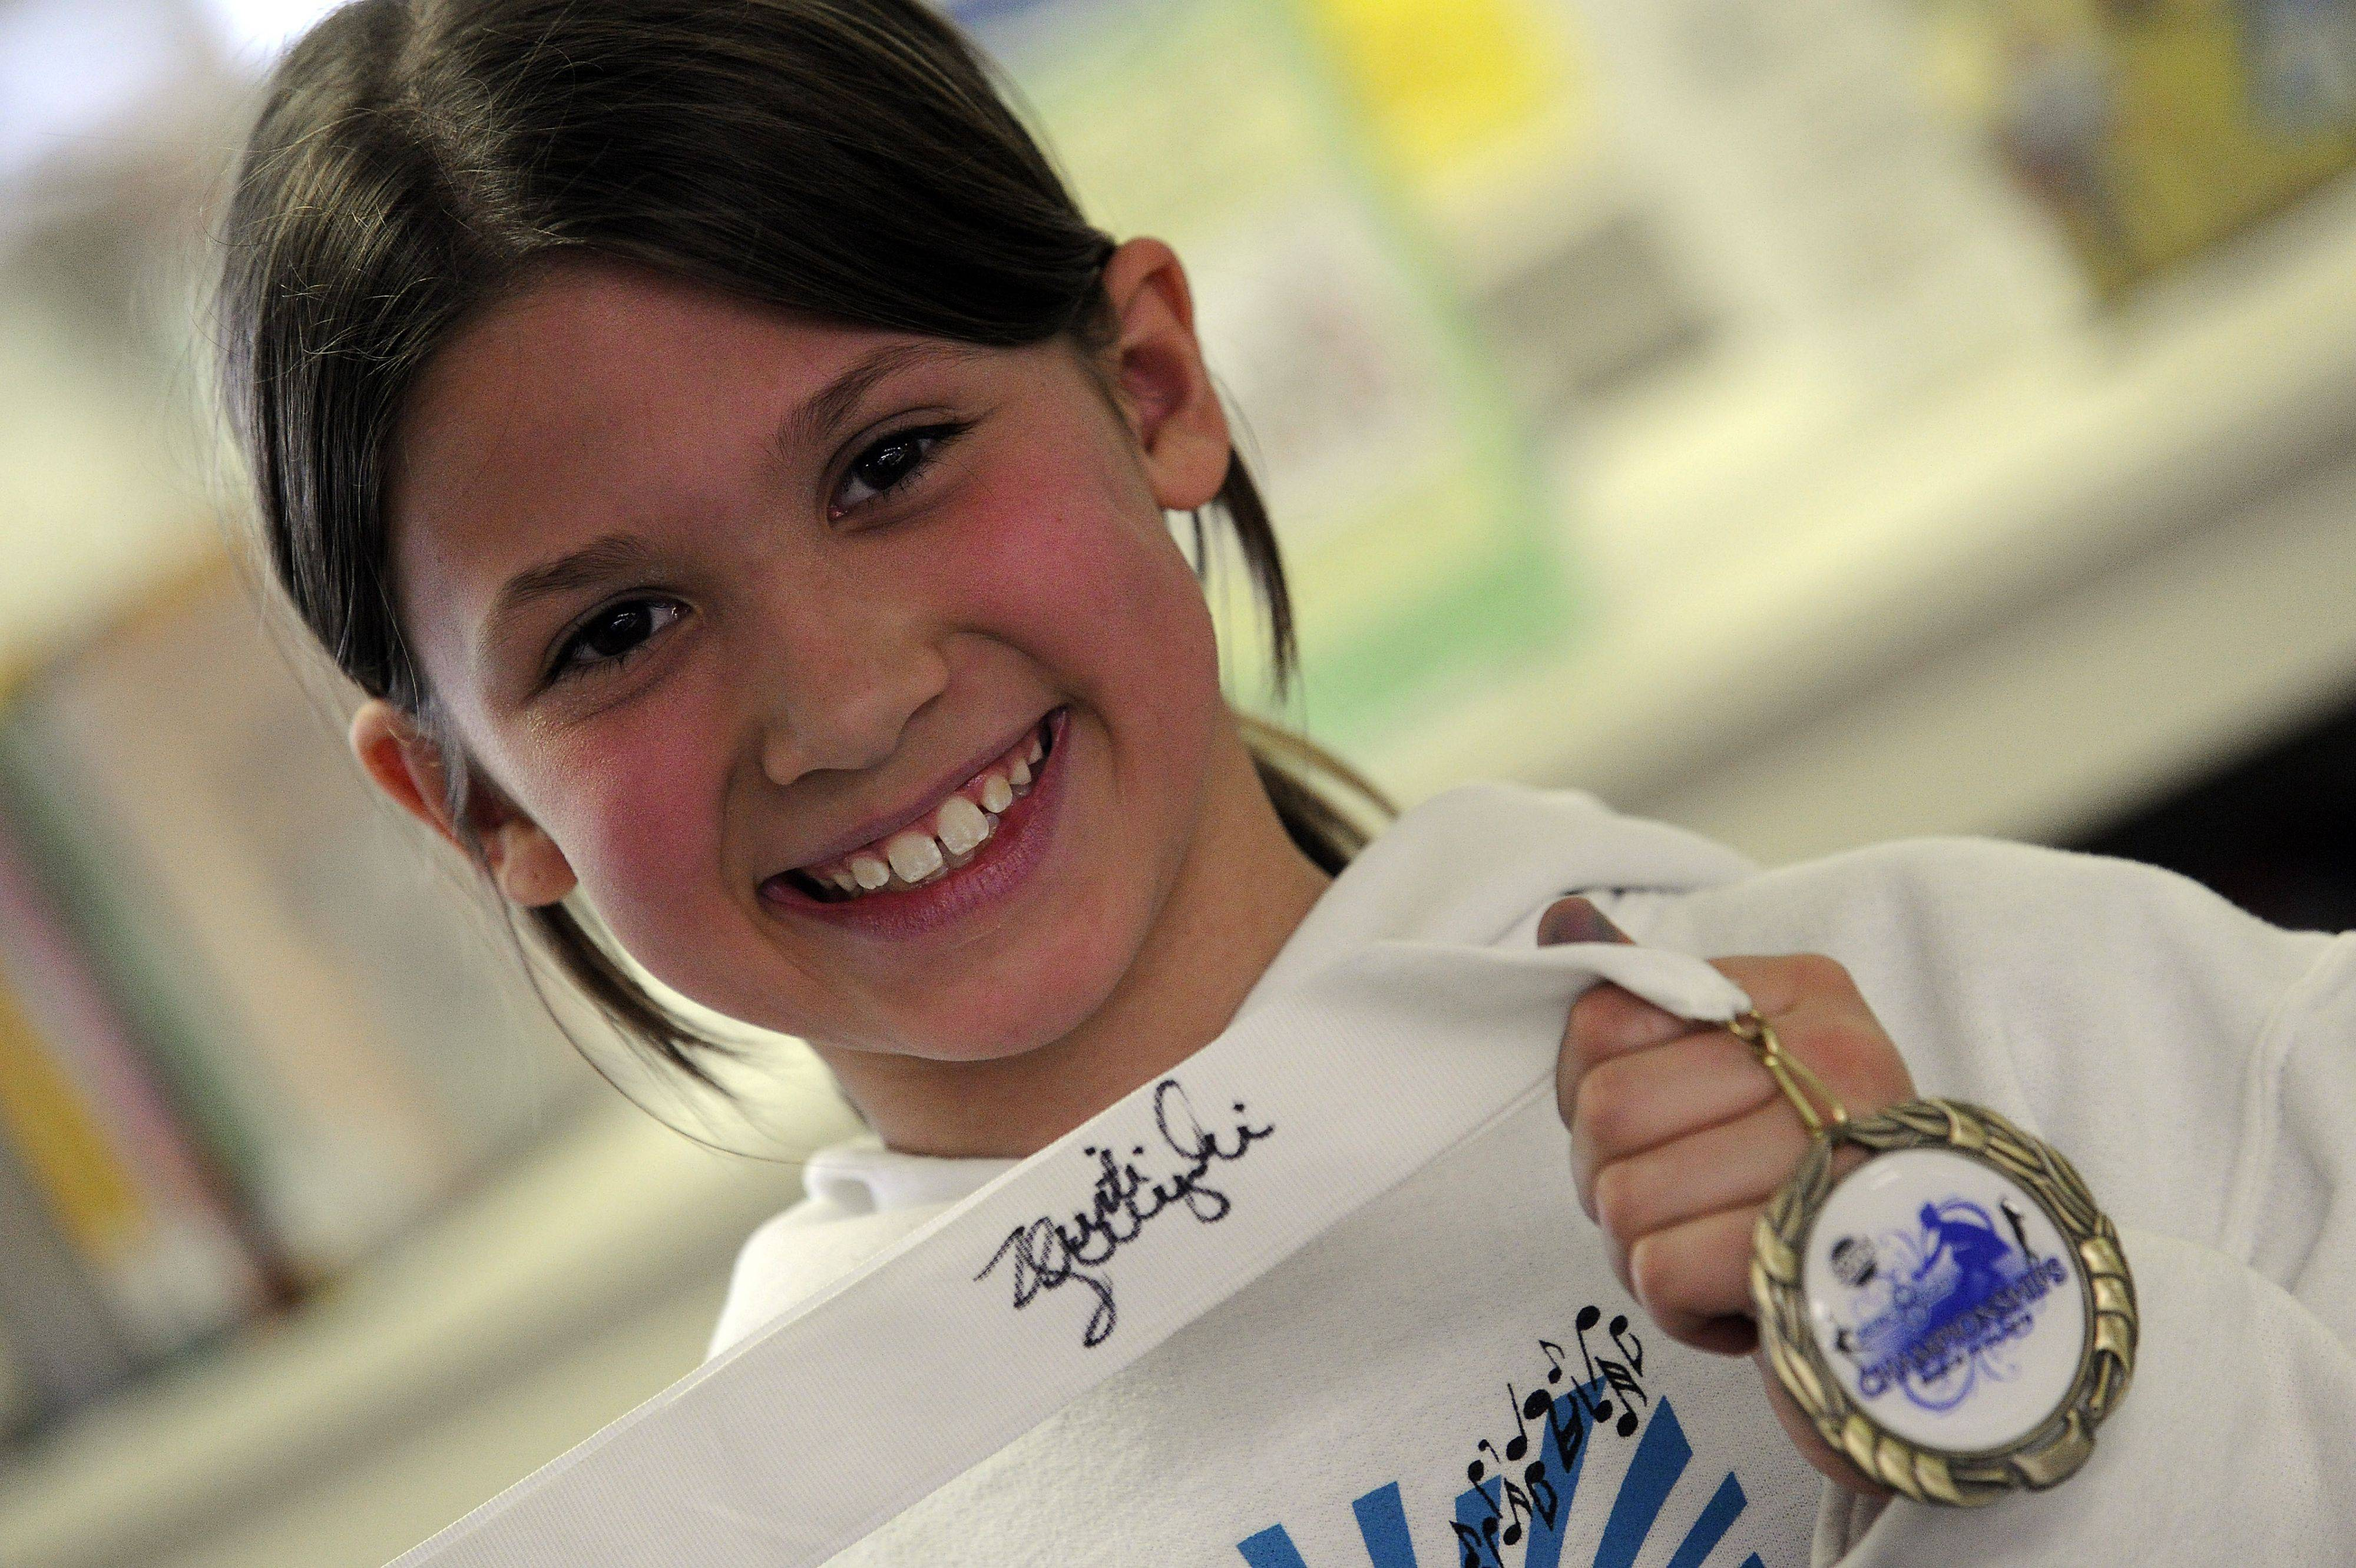 A figure skater herself, Lorelei Stailey, 9, of Arlington Heights had her medal signed by Kristi Yamaguchi.